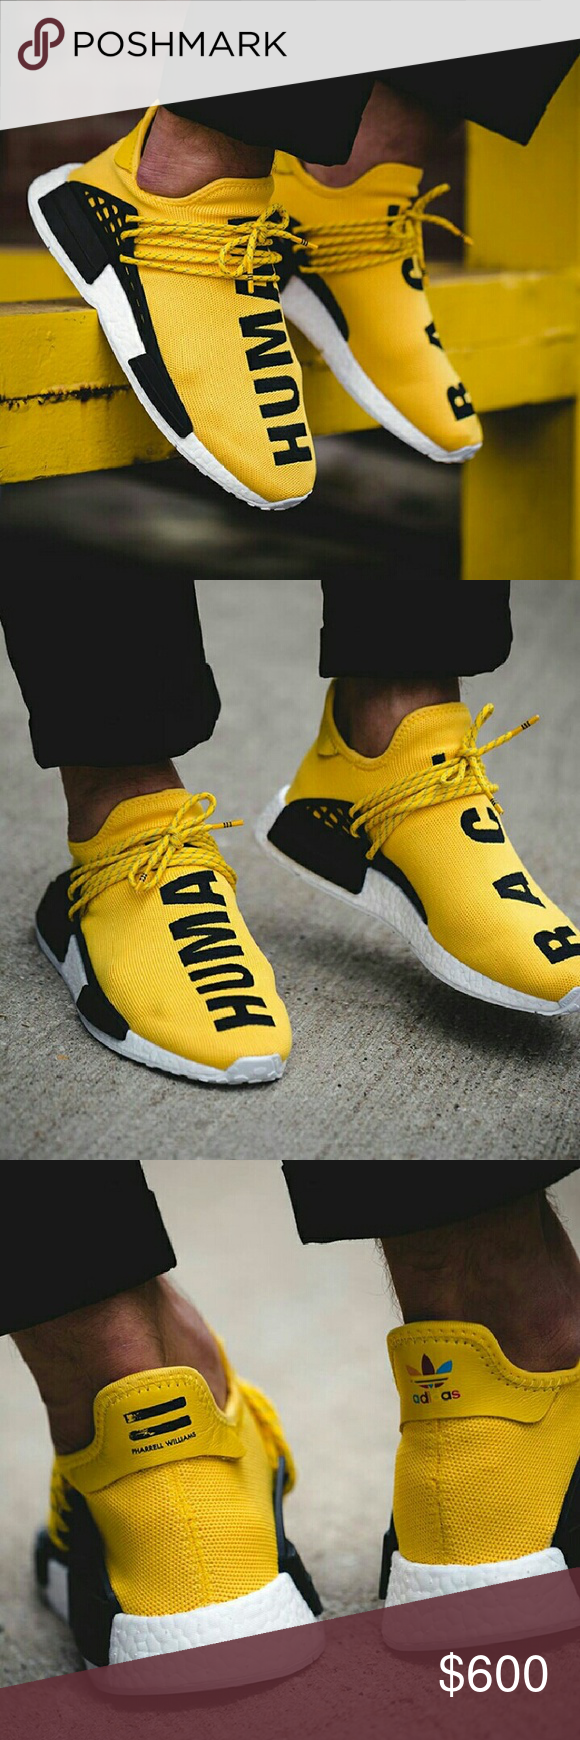 "Adidas X Pharrell ""HUMAN RACE"" NMD Coming from authorized Retailer 100% Authentic Very Limited!! Adidas X Pharrell HU NMD Men's Size 9.5 (Message me for better $$) adidas Shoes Sneakers"